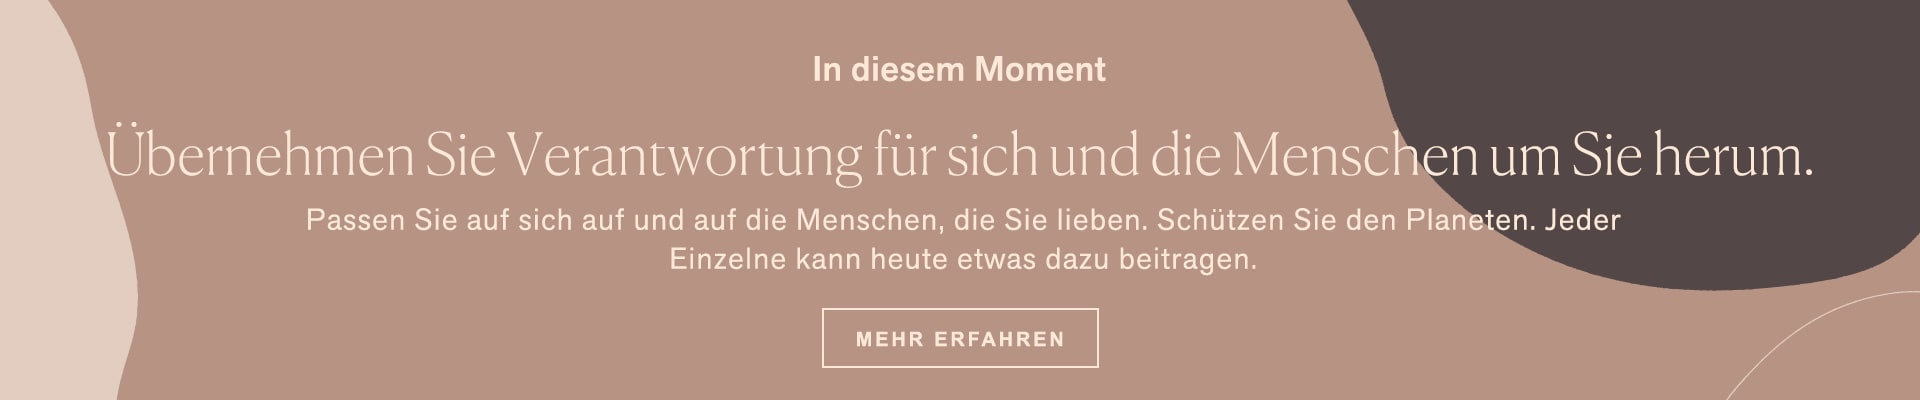 in diesem moment